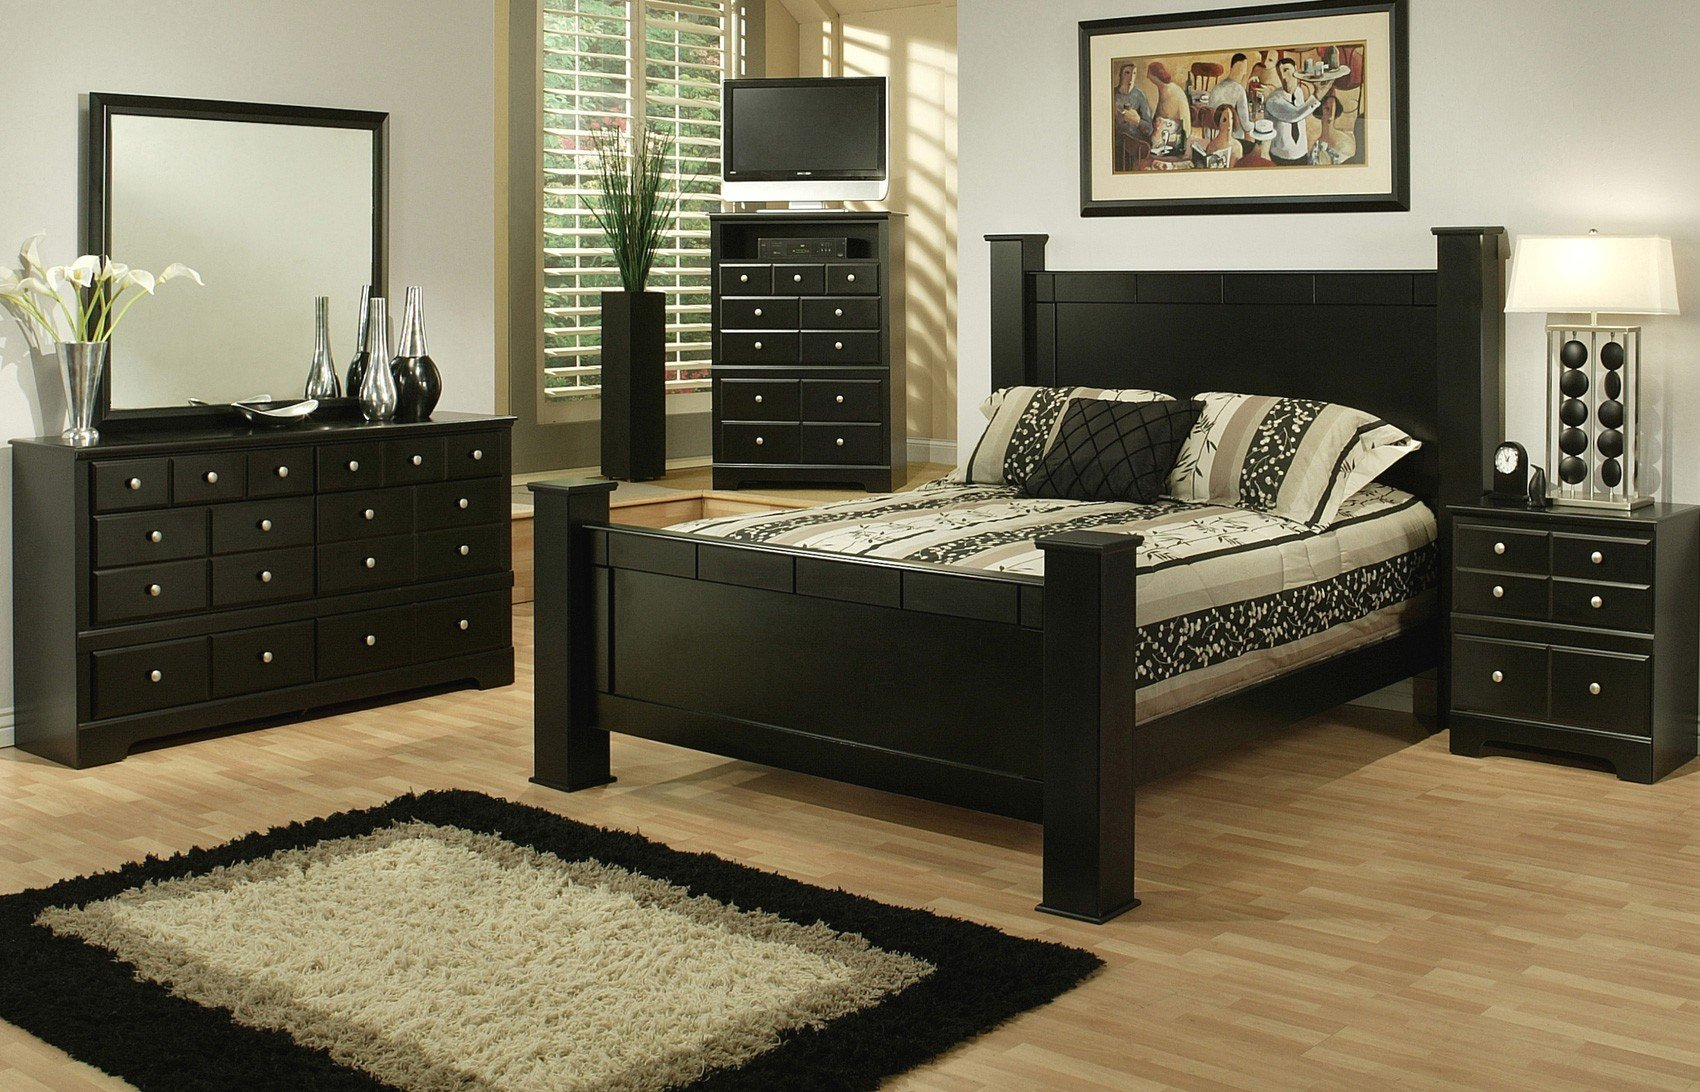 Best King Bedroom Suites Sets Clearance Queen Size Measurements With Pictures